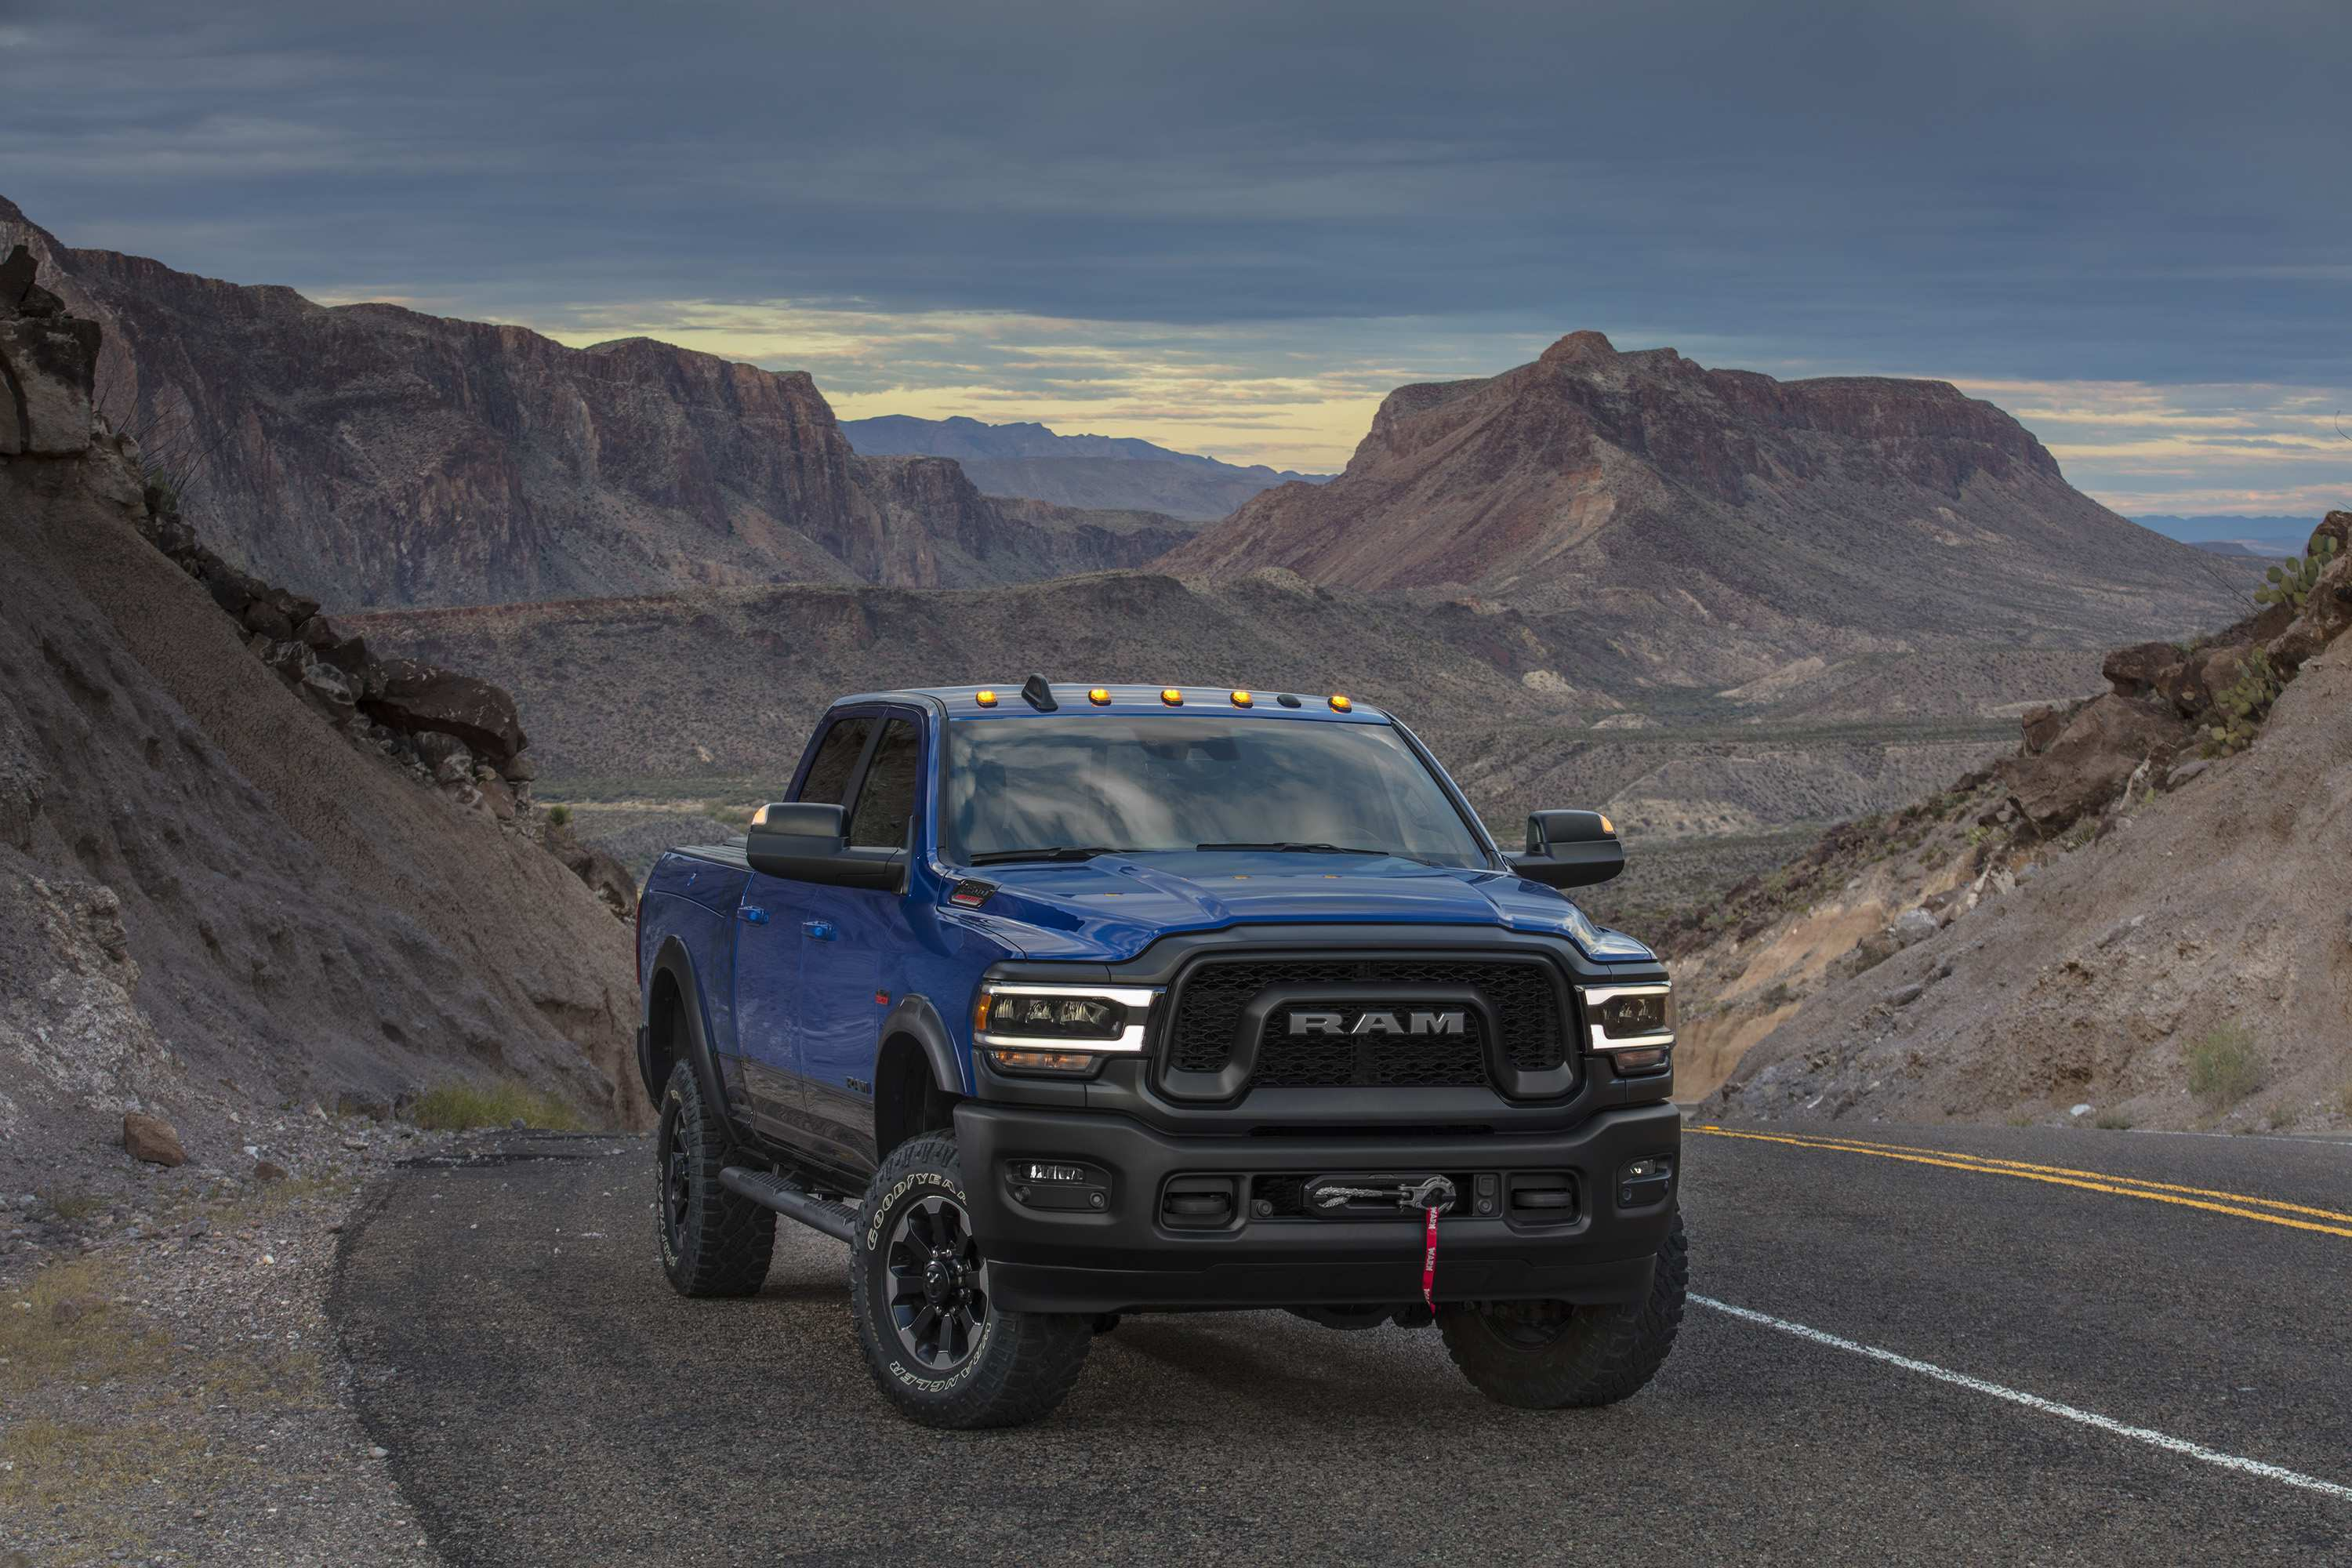 21 Gallery of New 2019 Dodge Power Wagon Specs And Review History with New 2019 Dodge Power Wagon Specs And Review